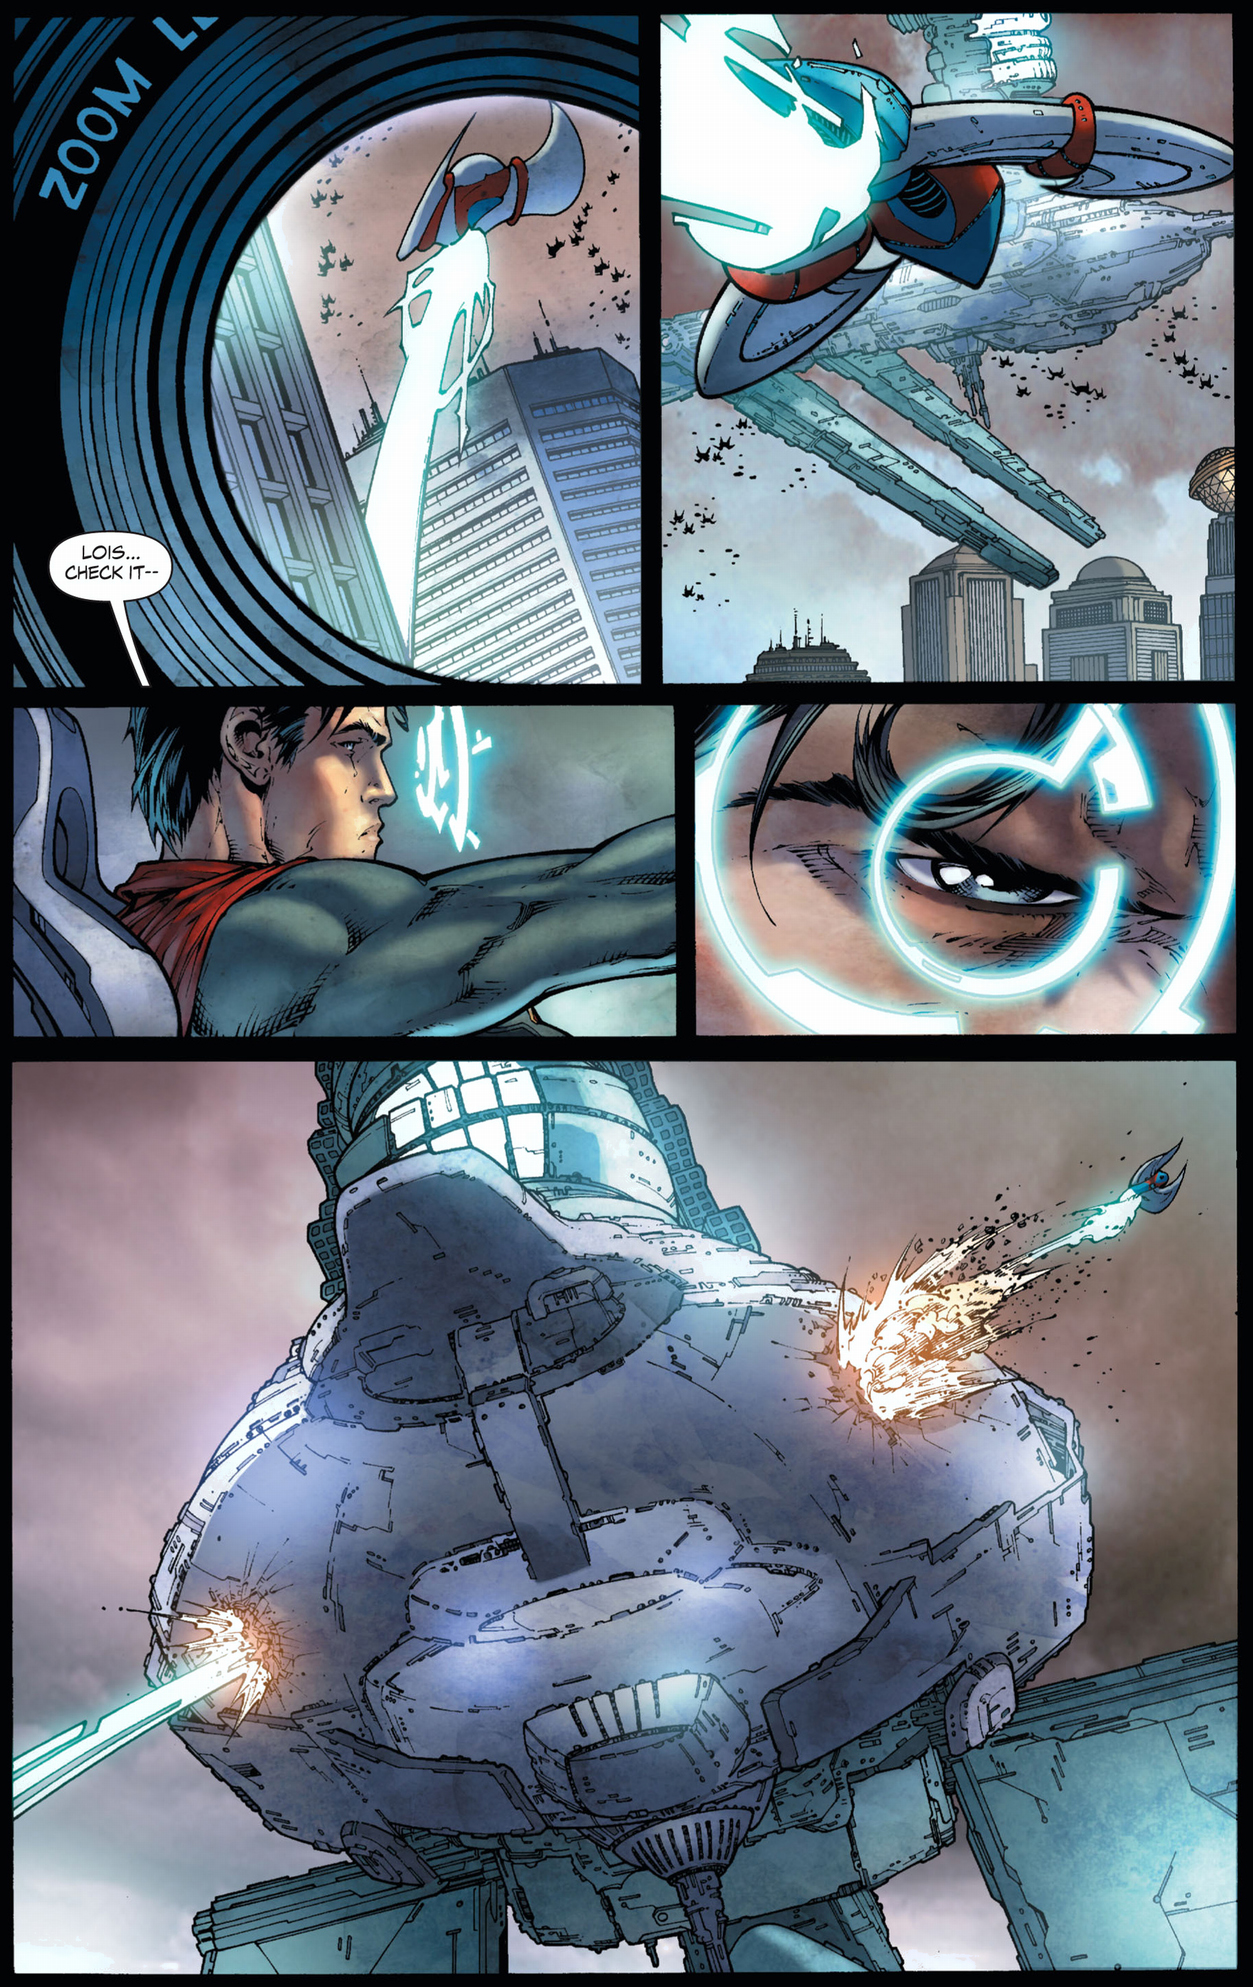 superman destroys tyrell's ship (earth 1)